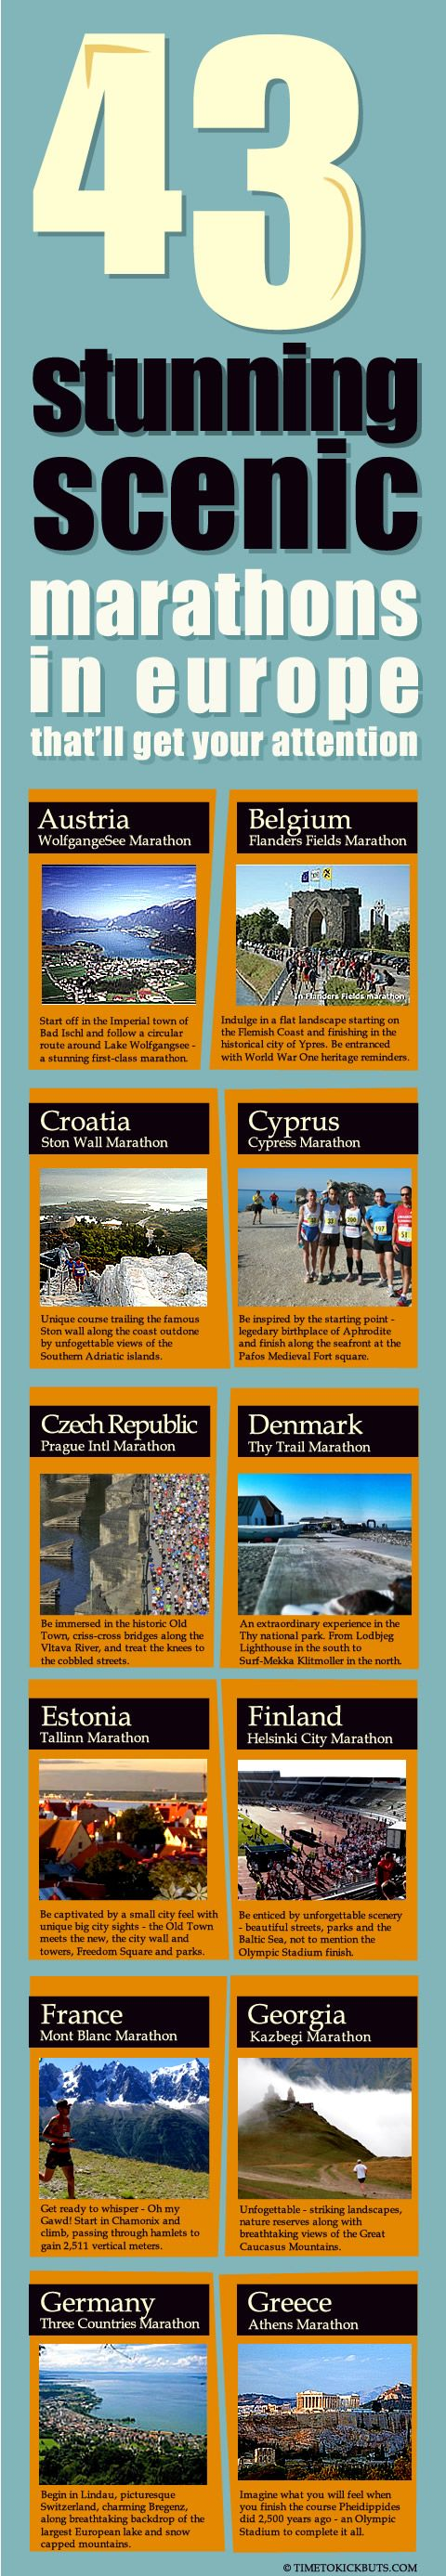 43 Stunning, Scenic Europe Marathons to expose those toes on.    Share a ♥ LUV KiCK  via http://www.TimeToKickBuTs.com